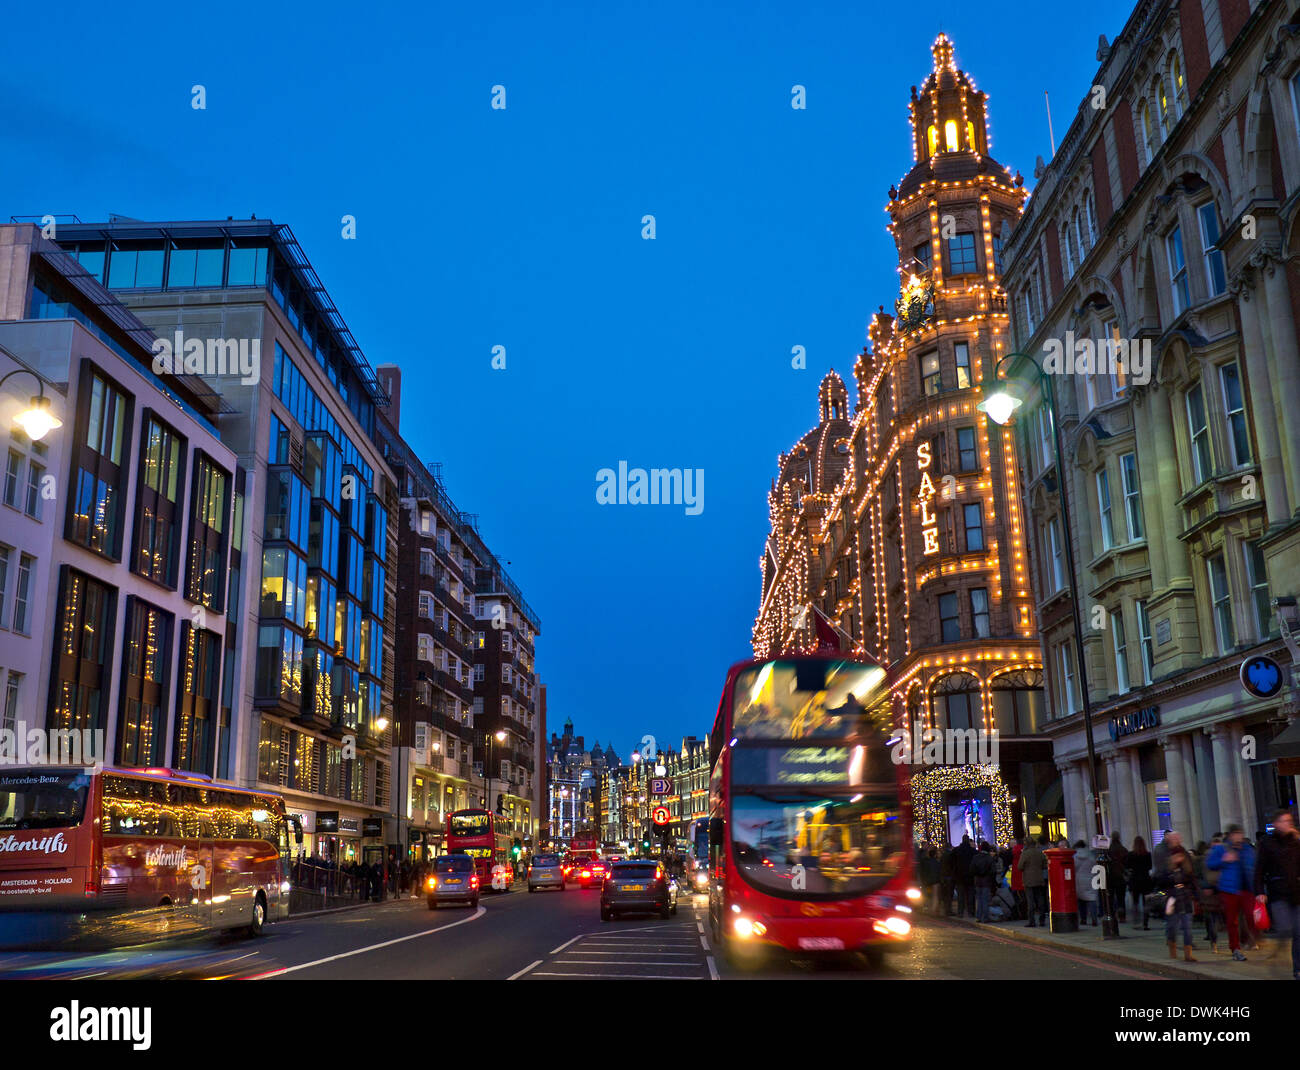 Brompton Road and Harrods department store at dusk with lit 'Sale' sign shoppers red buses and taxis Knightsbridge London SW1 - Stock Image